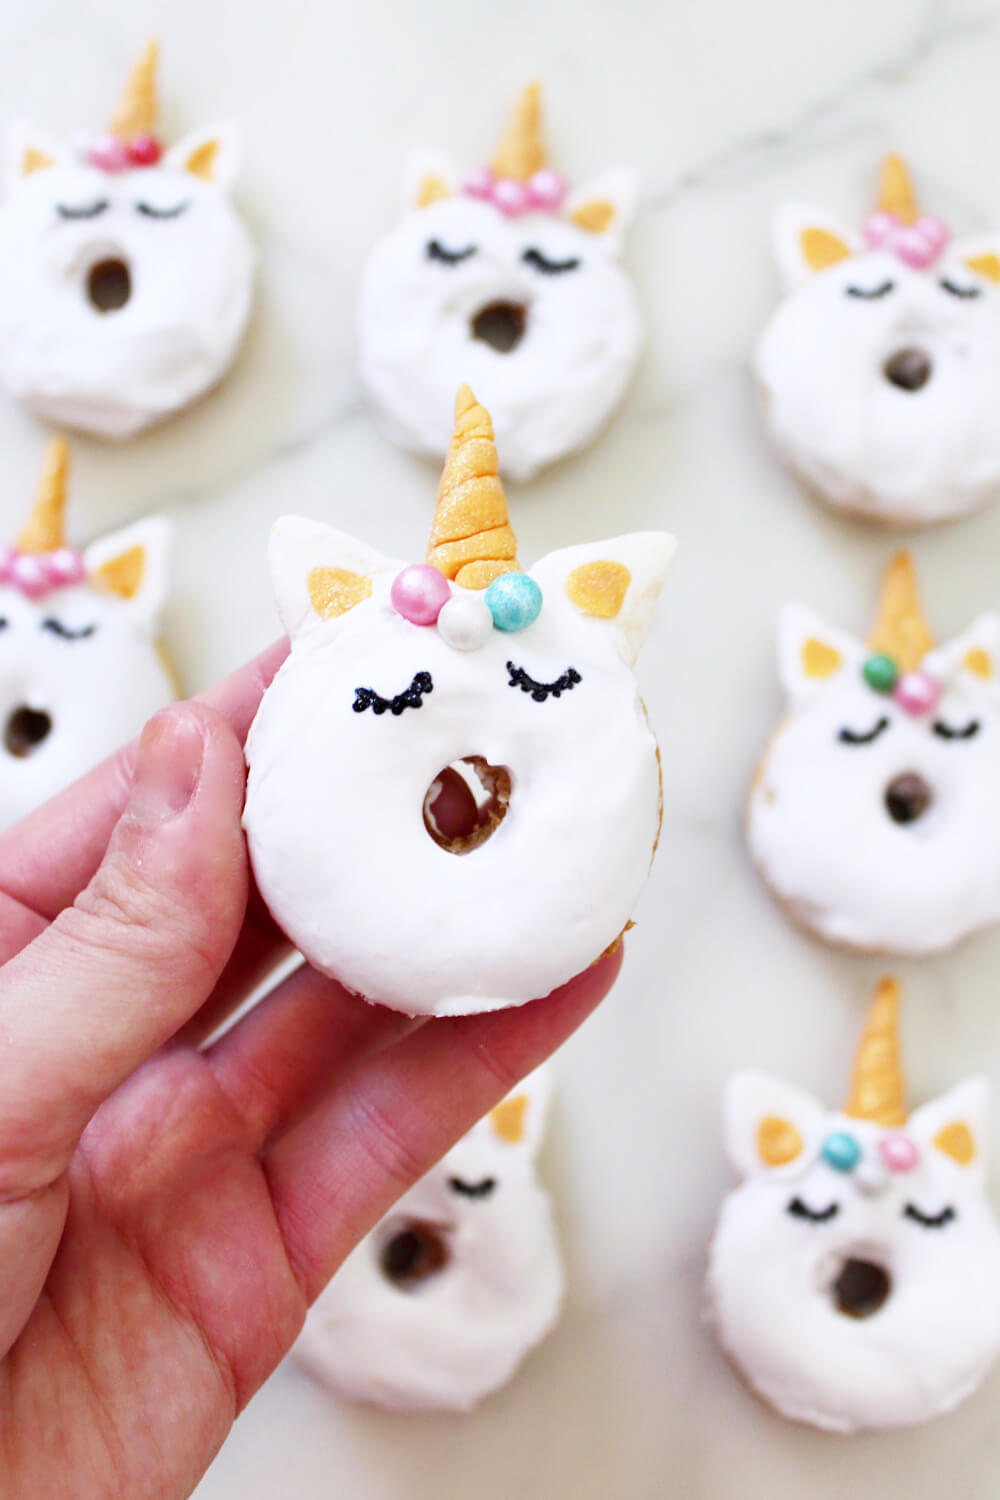 DIY-Mini-Donuts-backen-Rezept-Einhorn-Unicorn-DIY-Blog-7